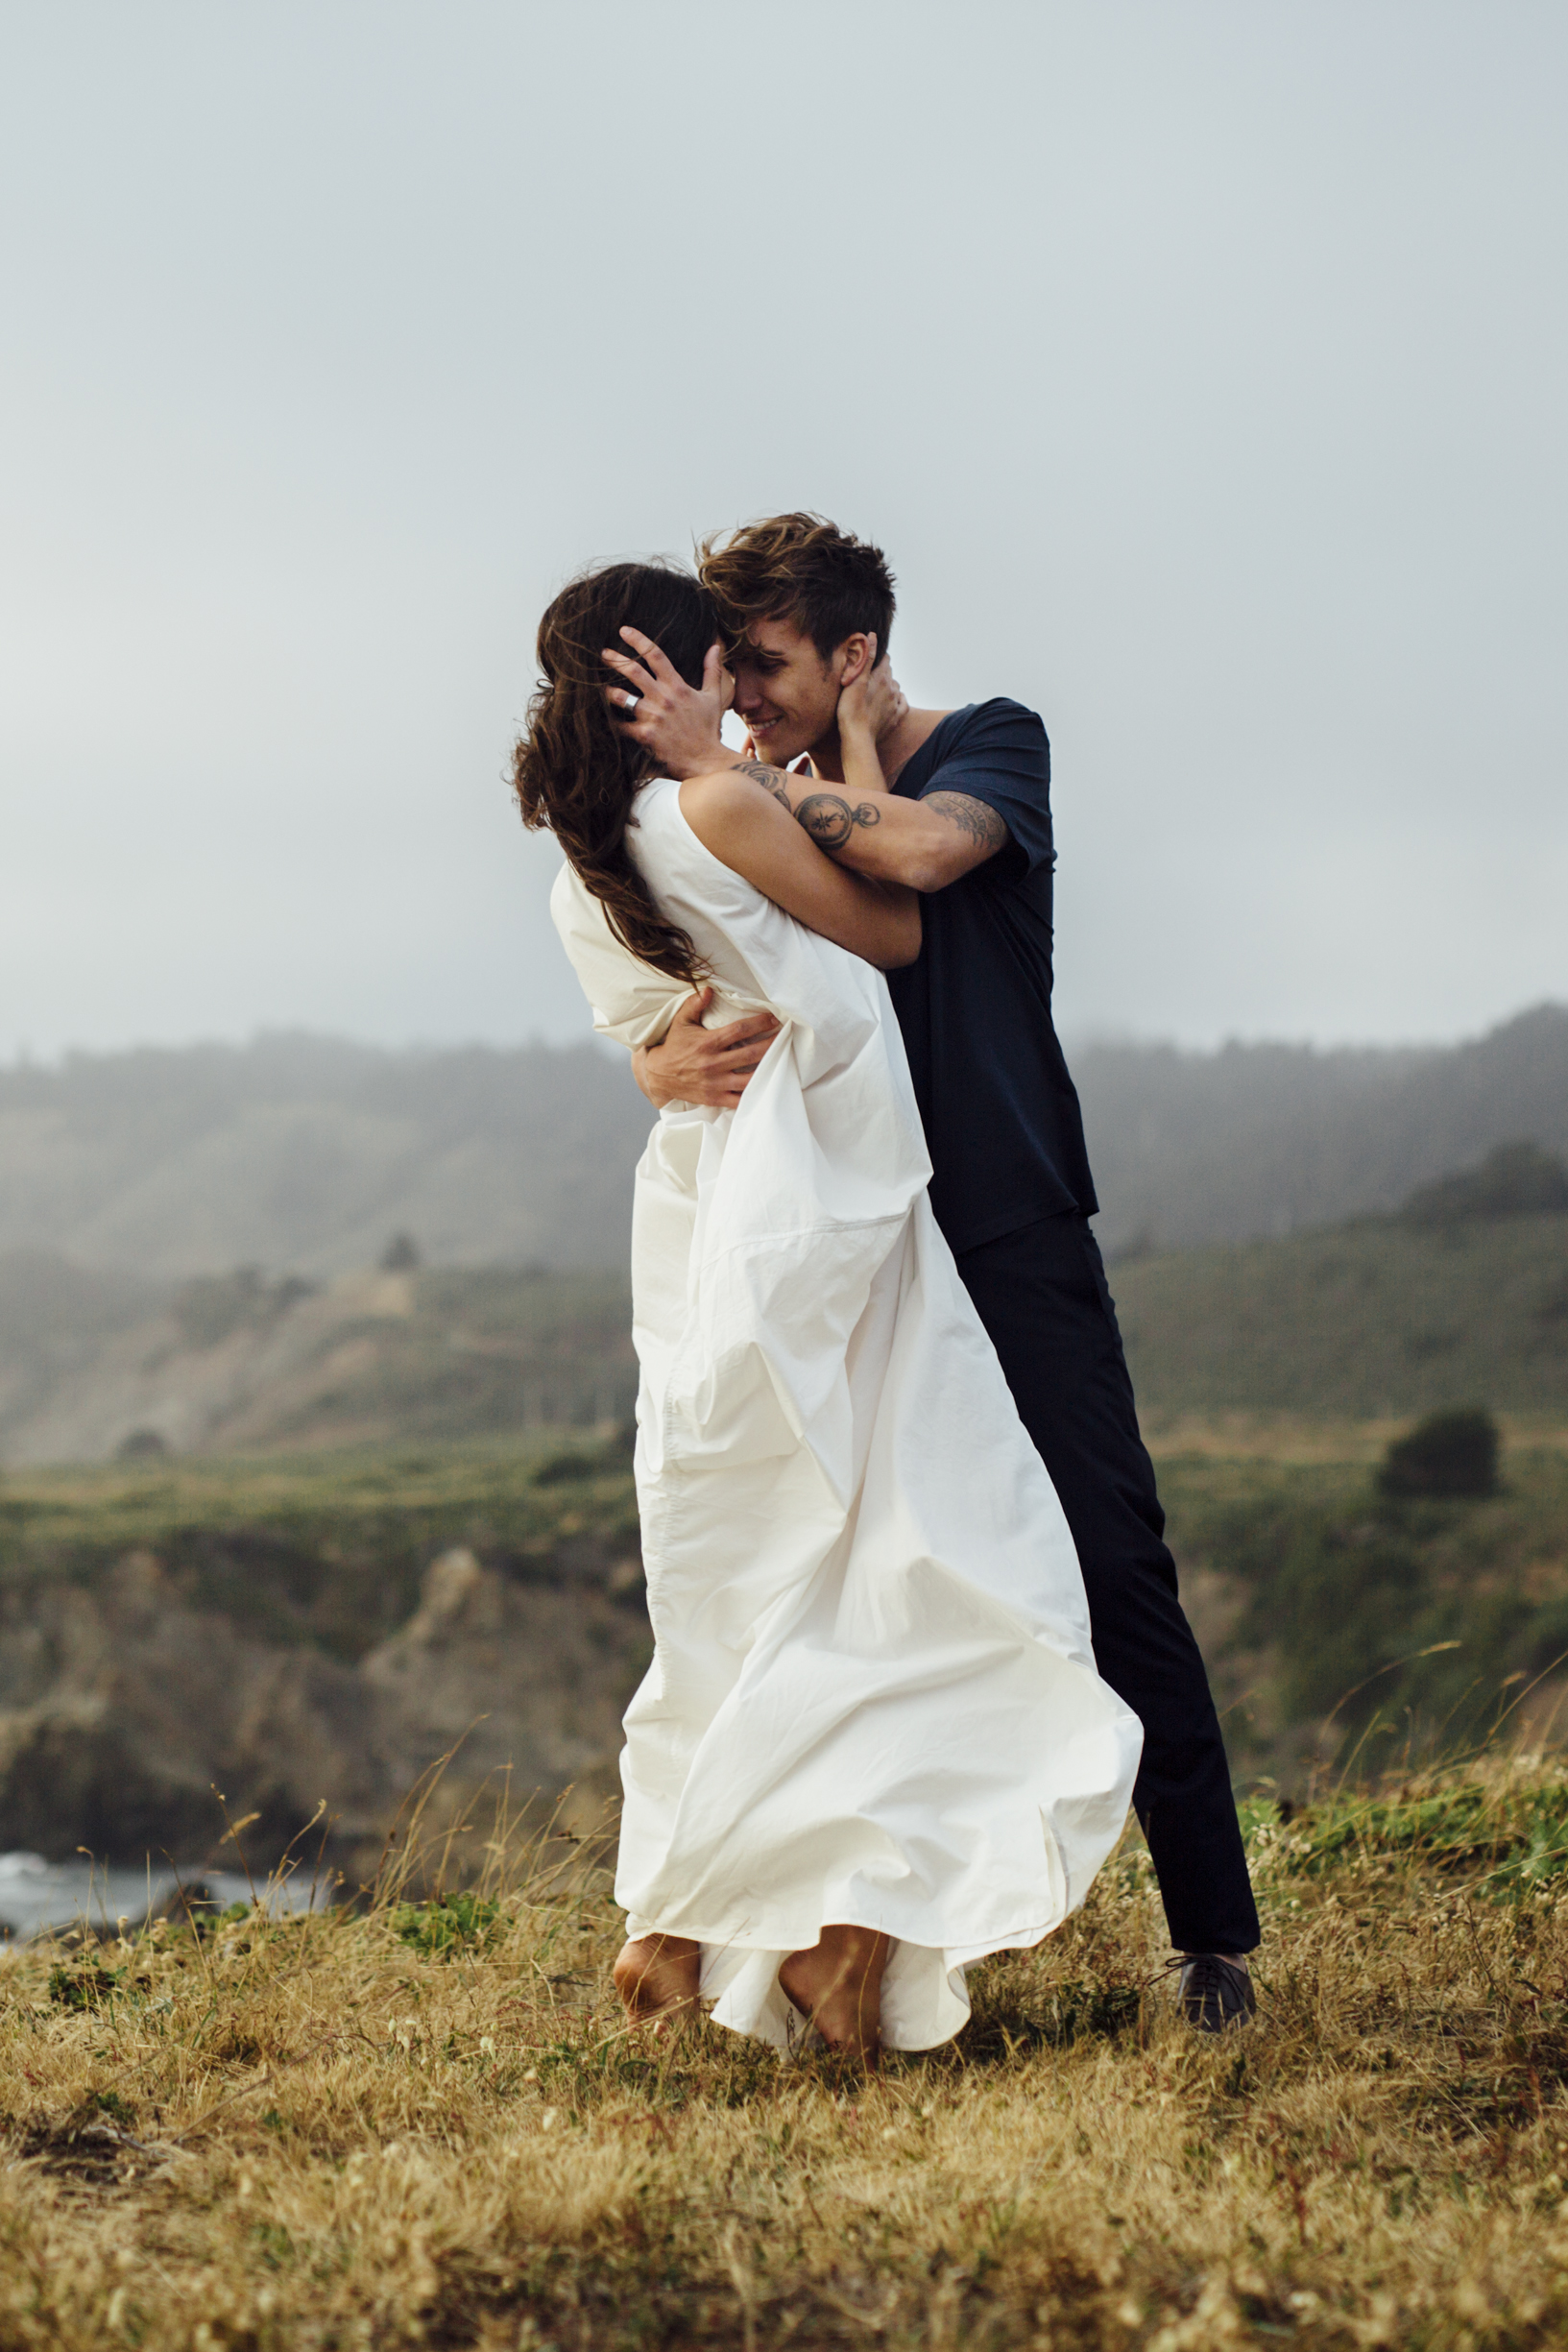 California-Wedding-Photography-by-Artur-Zaitsev-18